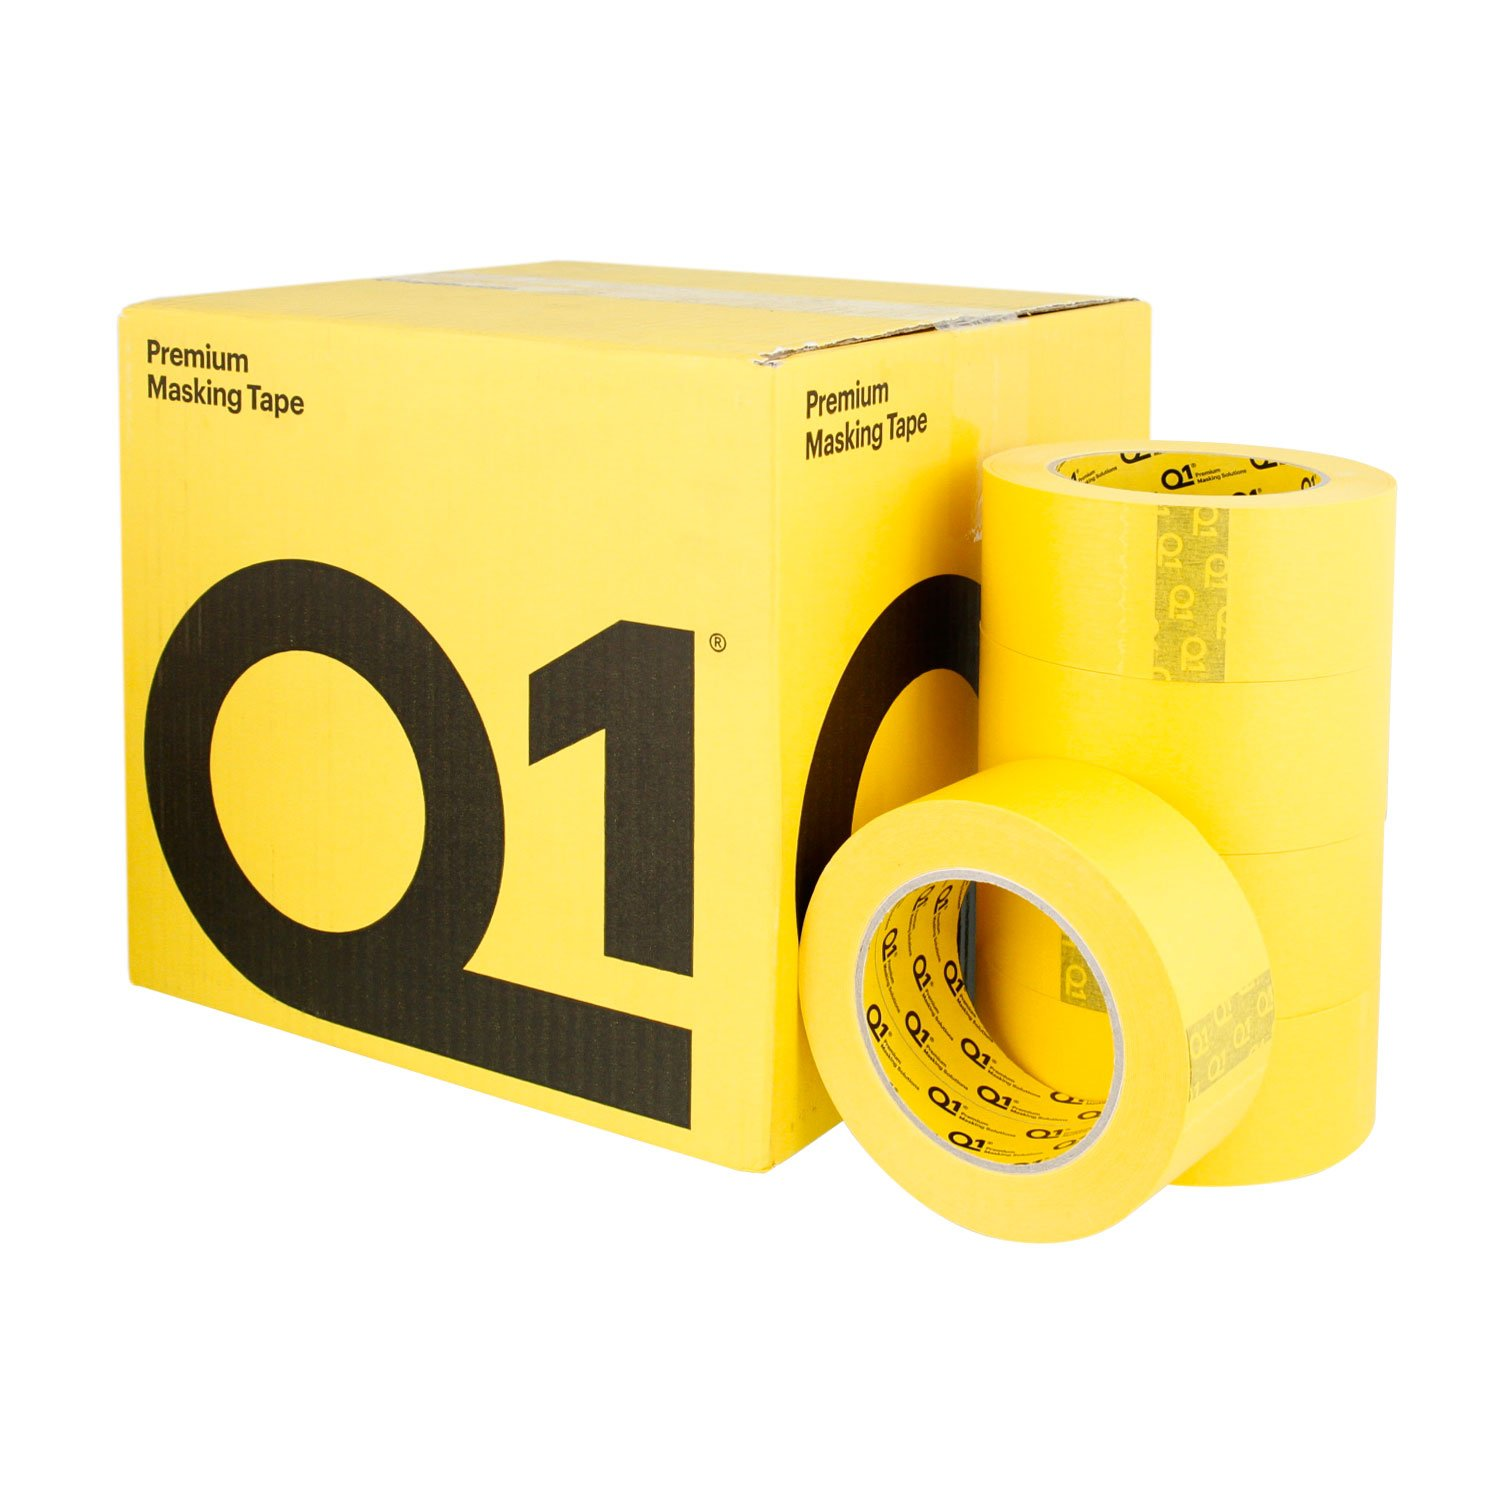 Q1 - 2 inch (48mm x 55m) Premium High Performance Automivite Yellow Masking Tape - High Temperature - Case of 20 Rolls by Q1 (Image #1)